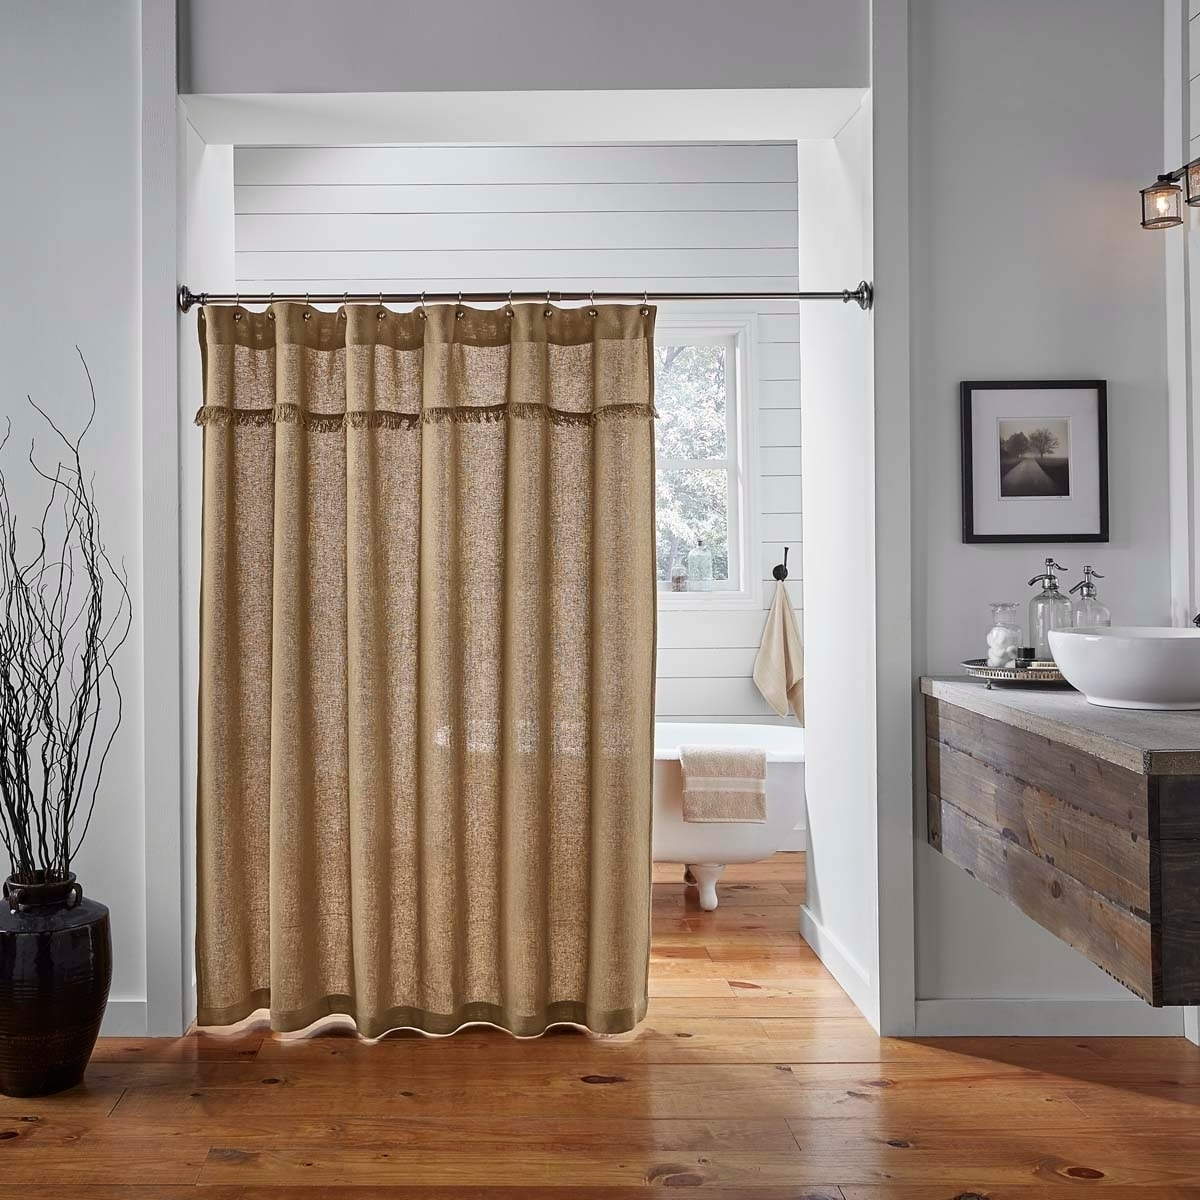 Buy Tan Shower Curtains Online at Overstock.com | Our Best Shower ...